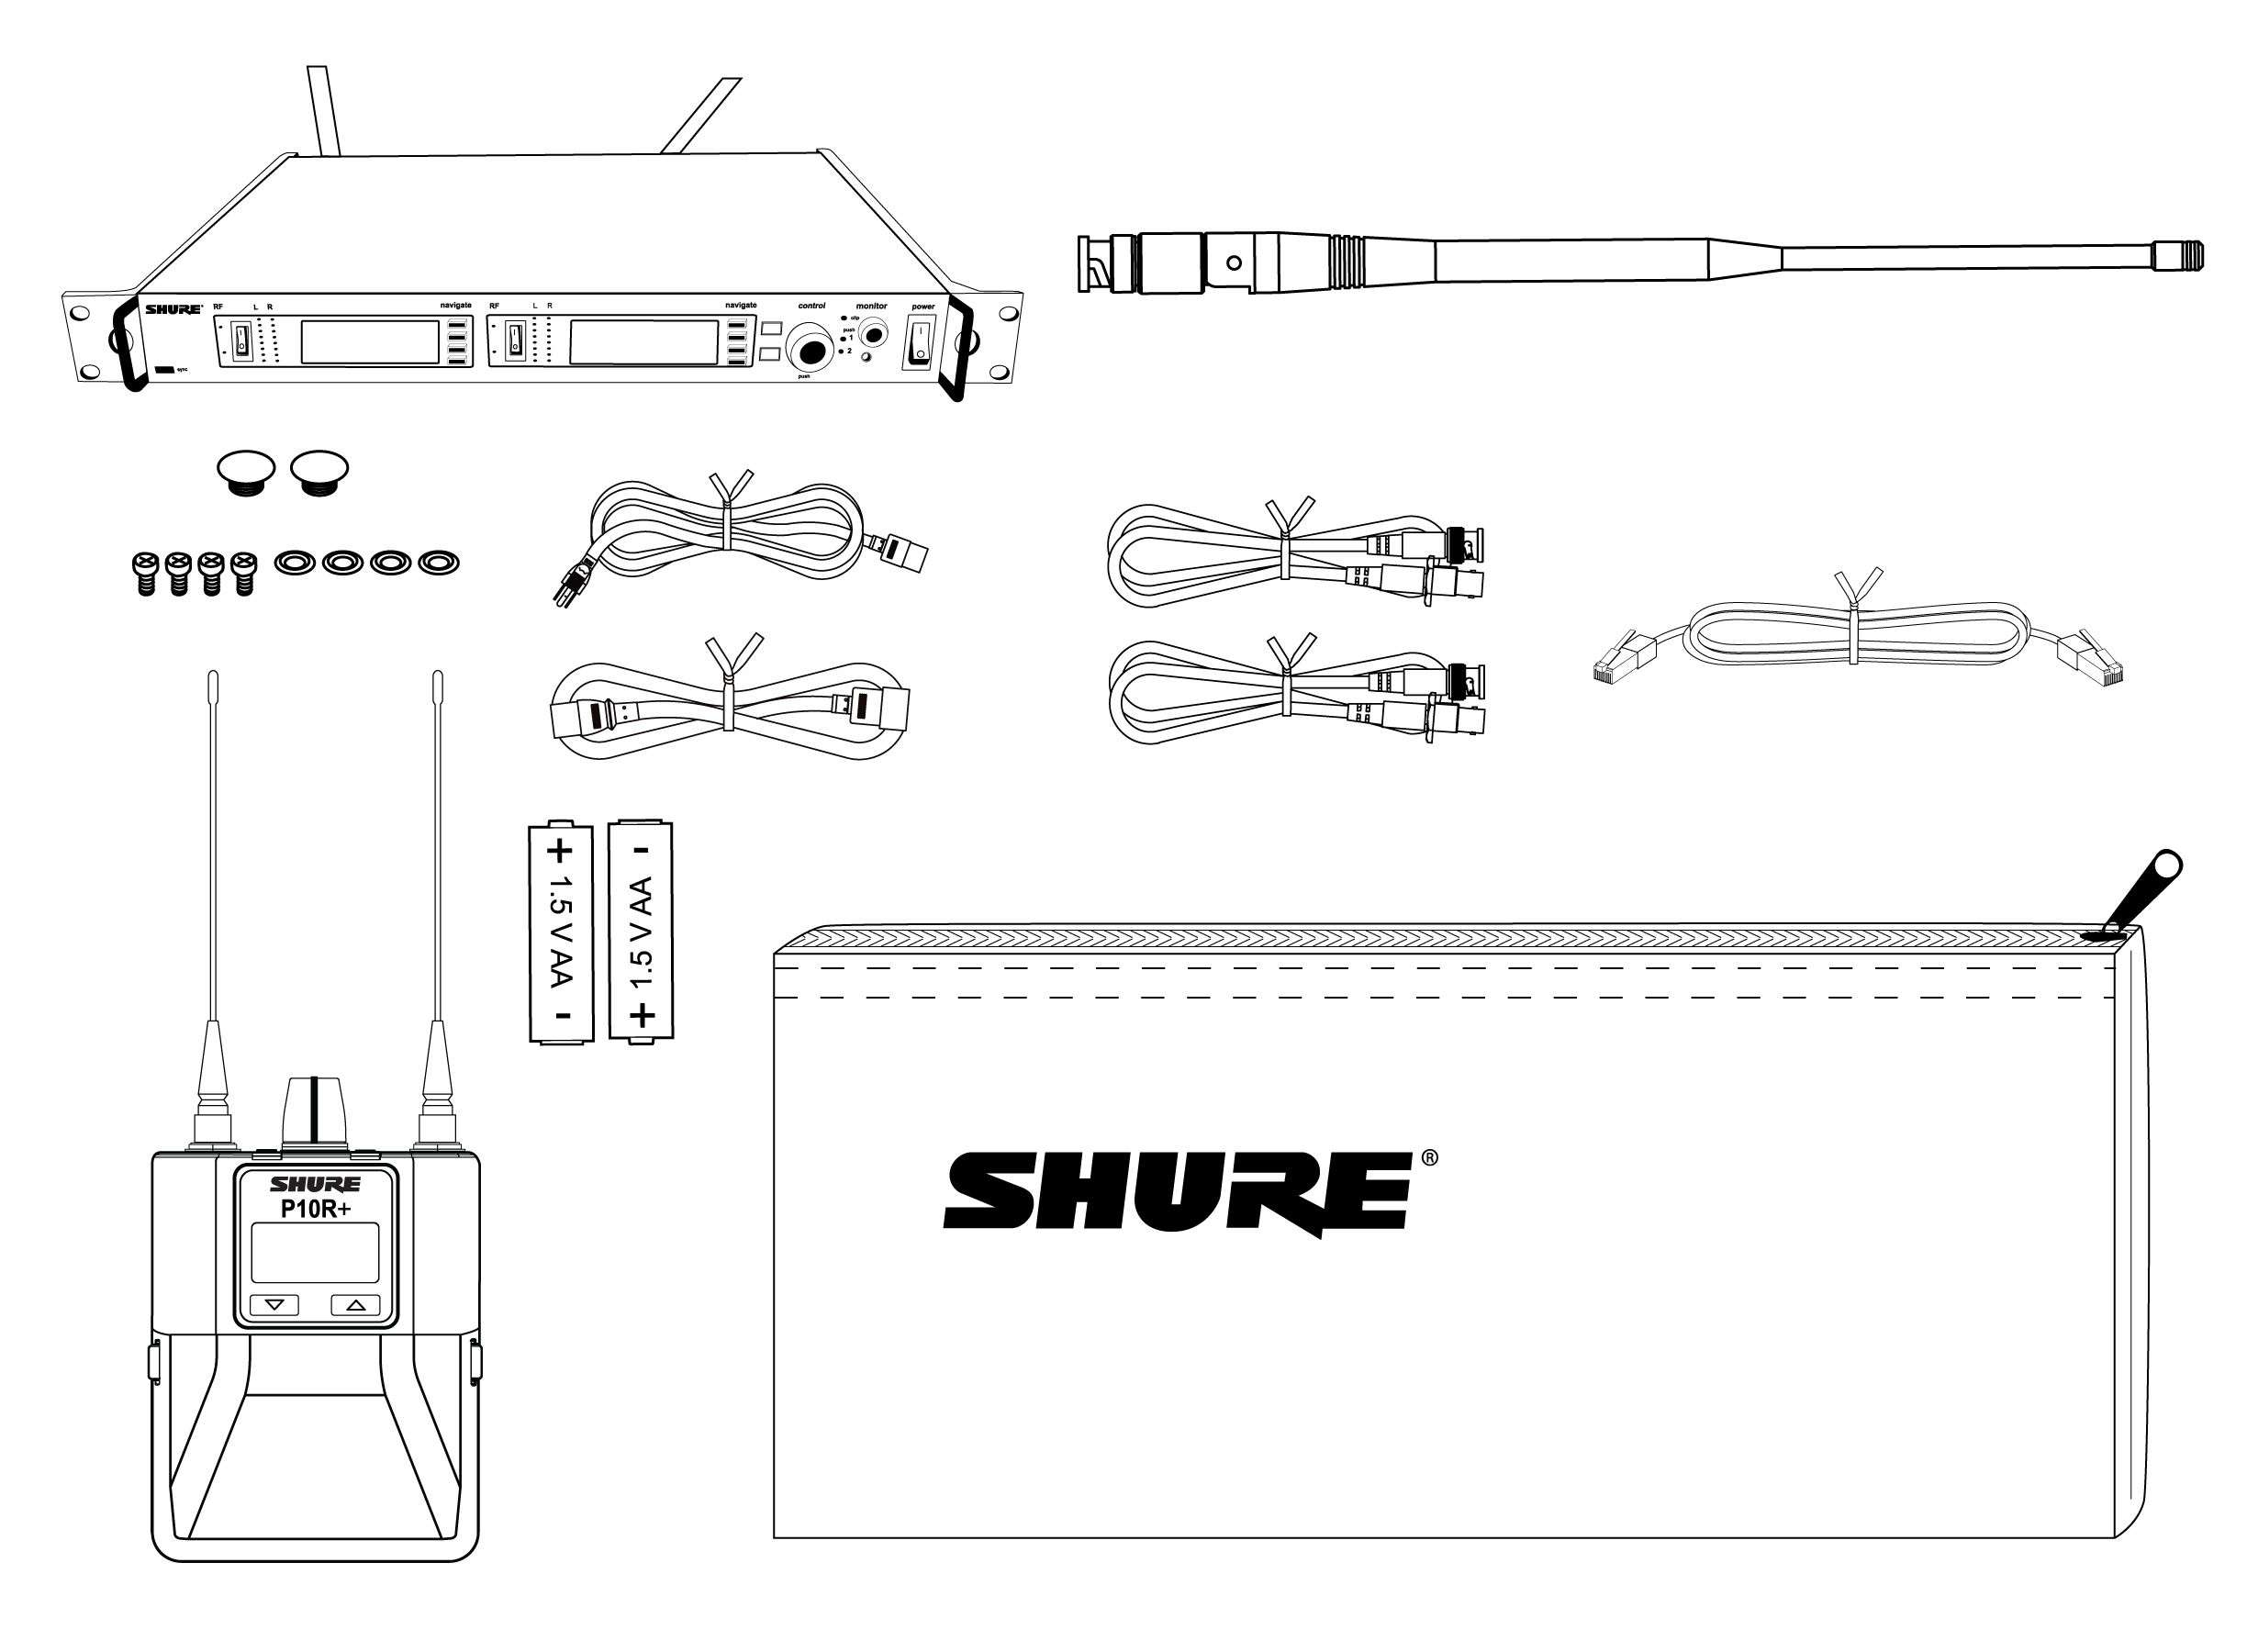 Shure Publications User Guides Psm1000 And The Antenna Transmitter Two Points Are In One Line 2 Hole Plugs 4 Rack Mounting Screws With Washers